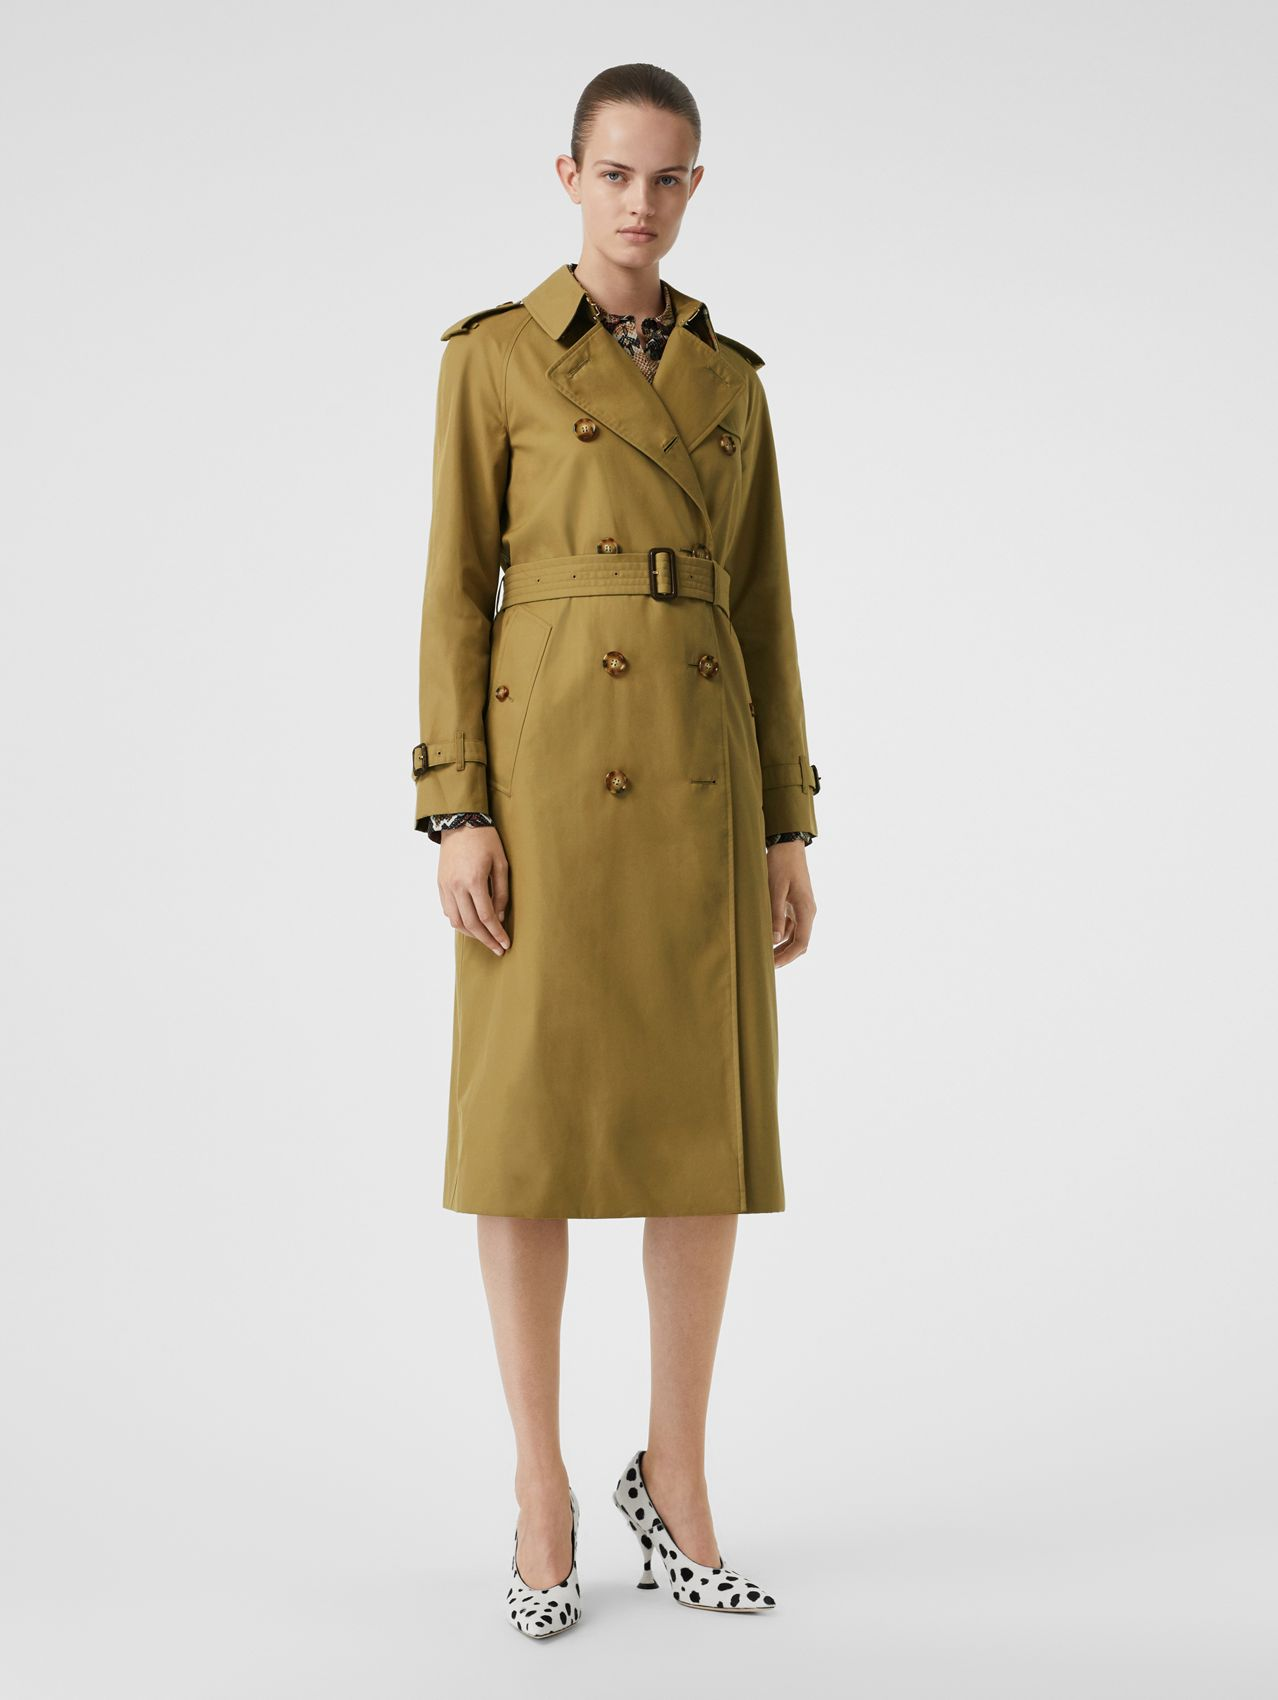 The Waterloo Trench Coat in Rich Olive